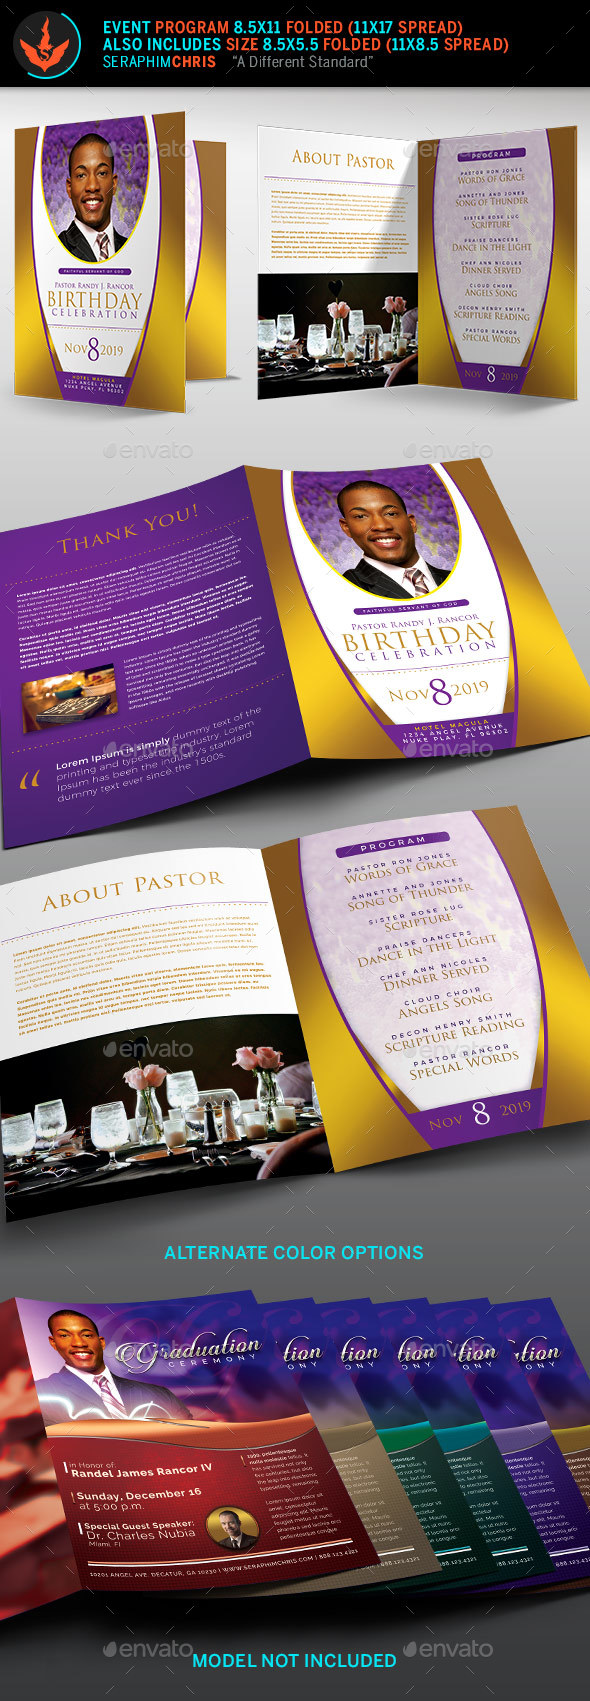 GraphicRiver Royal Pastor Birthday Party Program Template 20797887